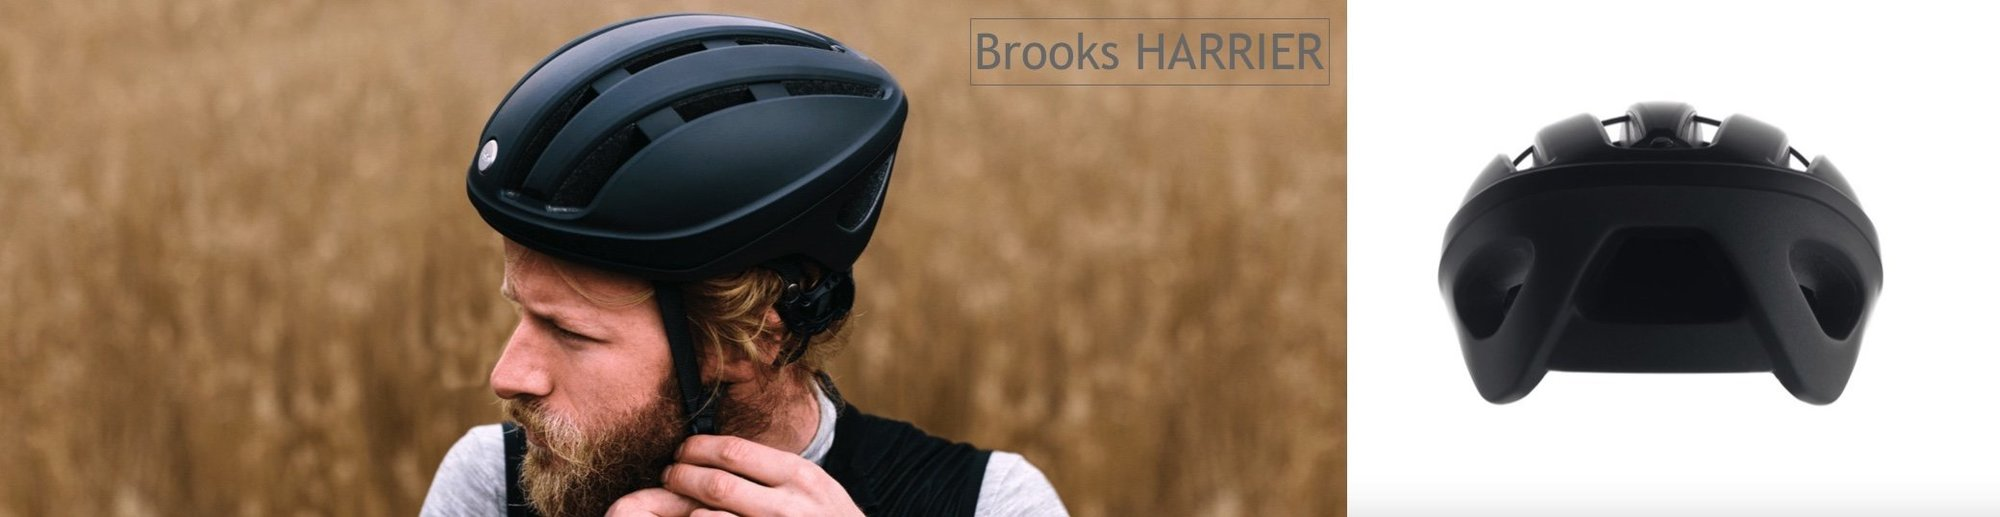 Brooks Harrier